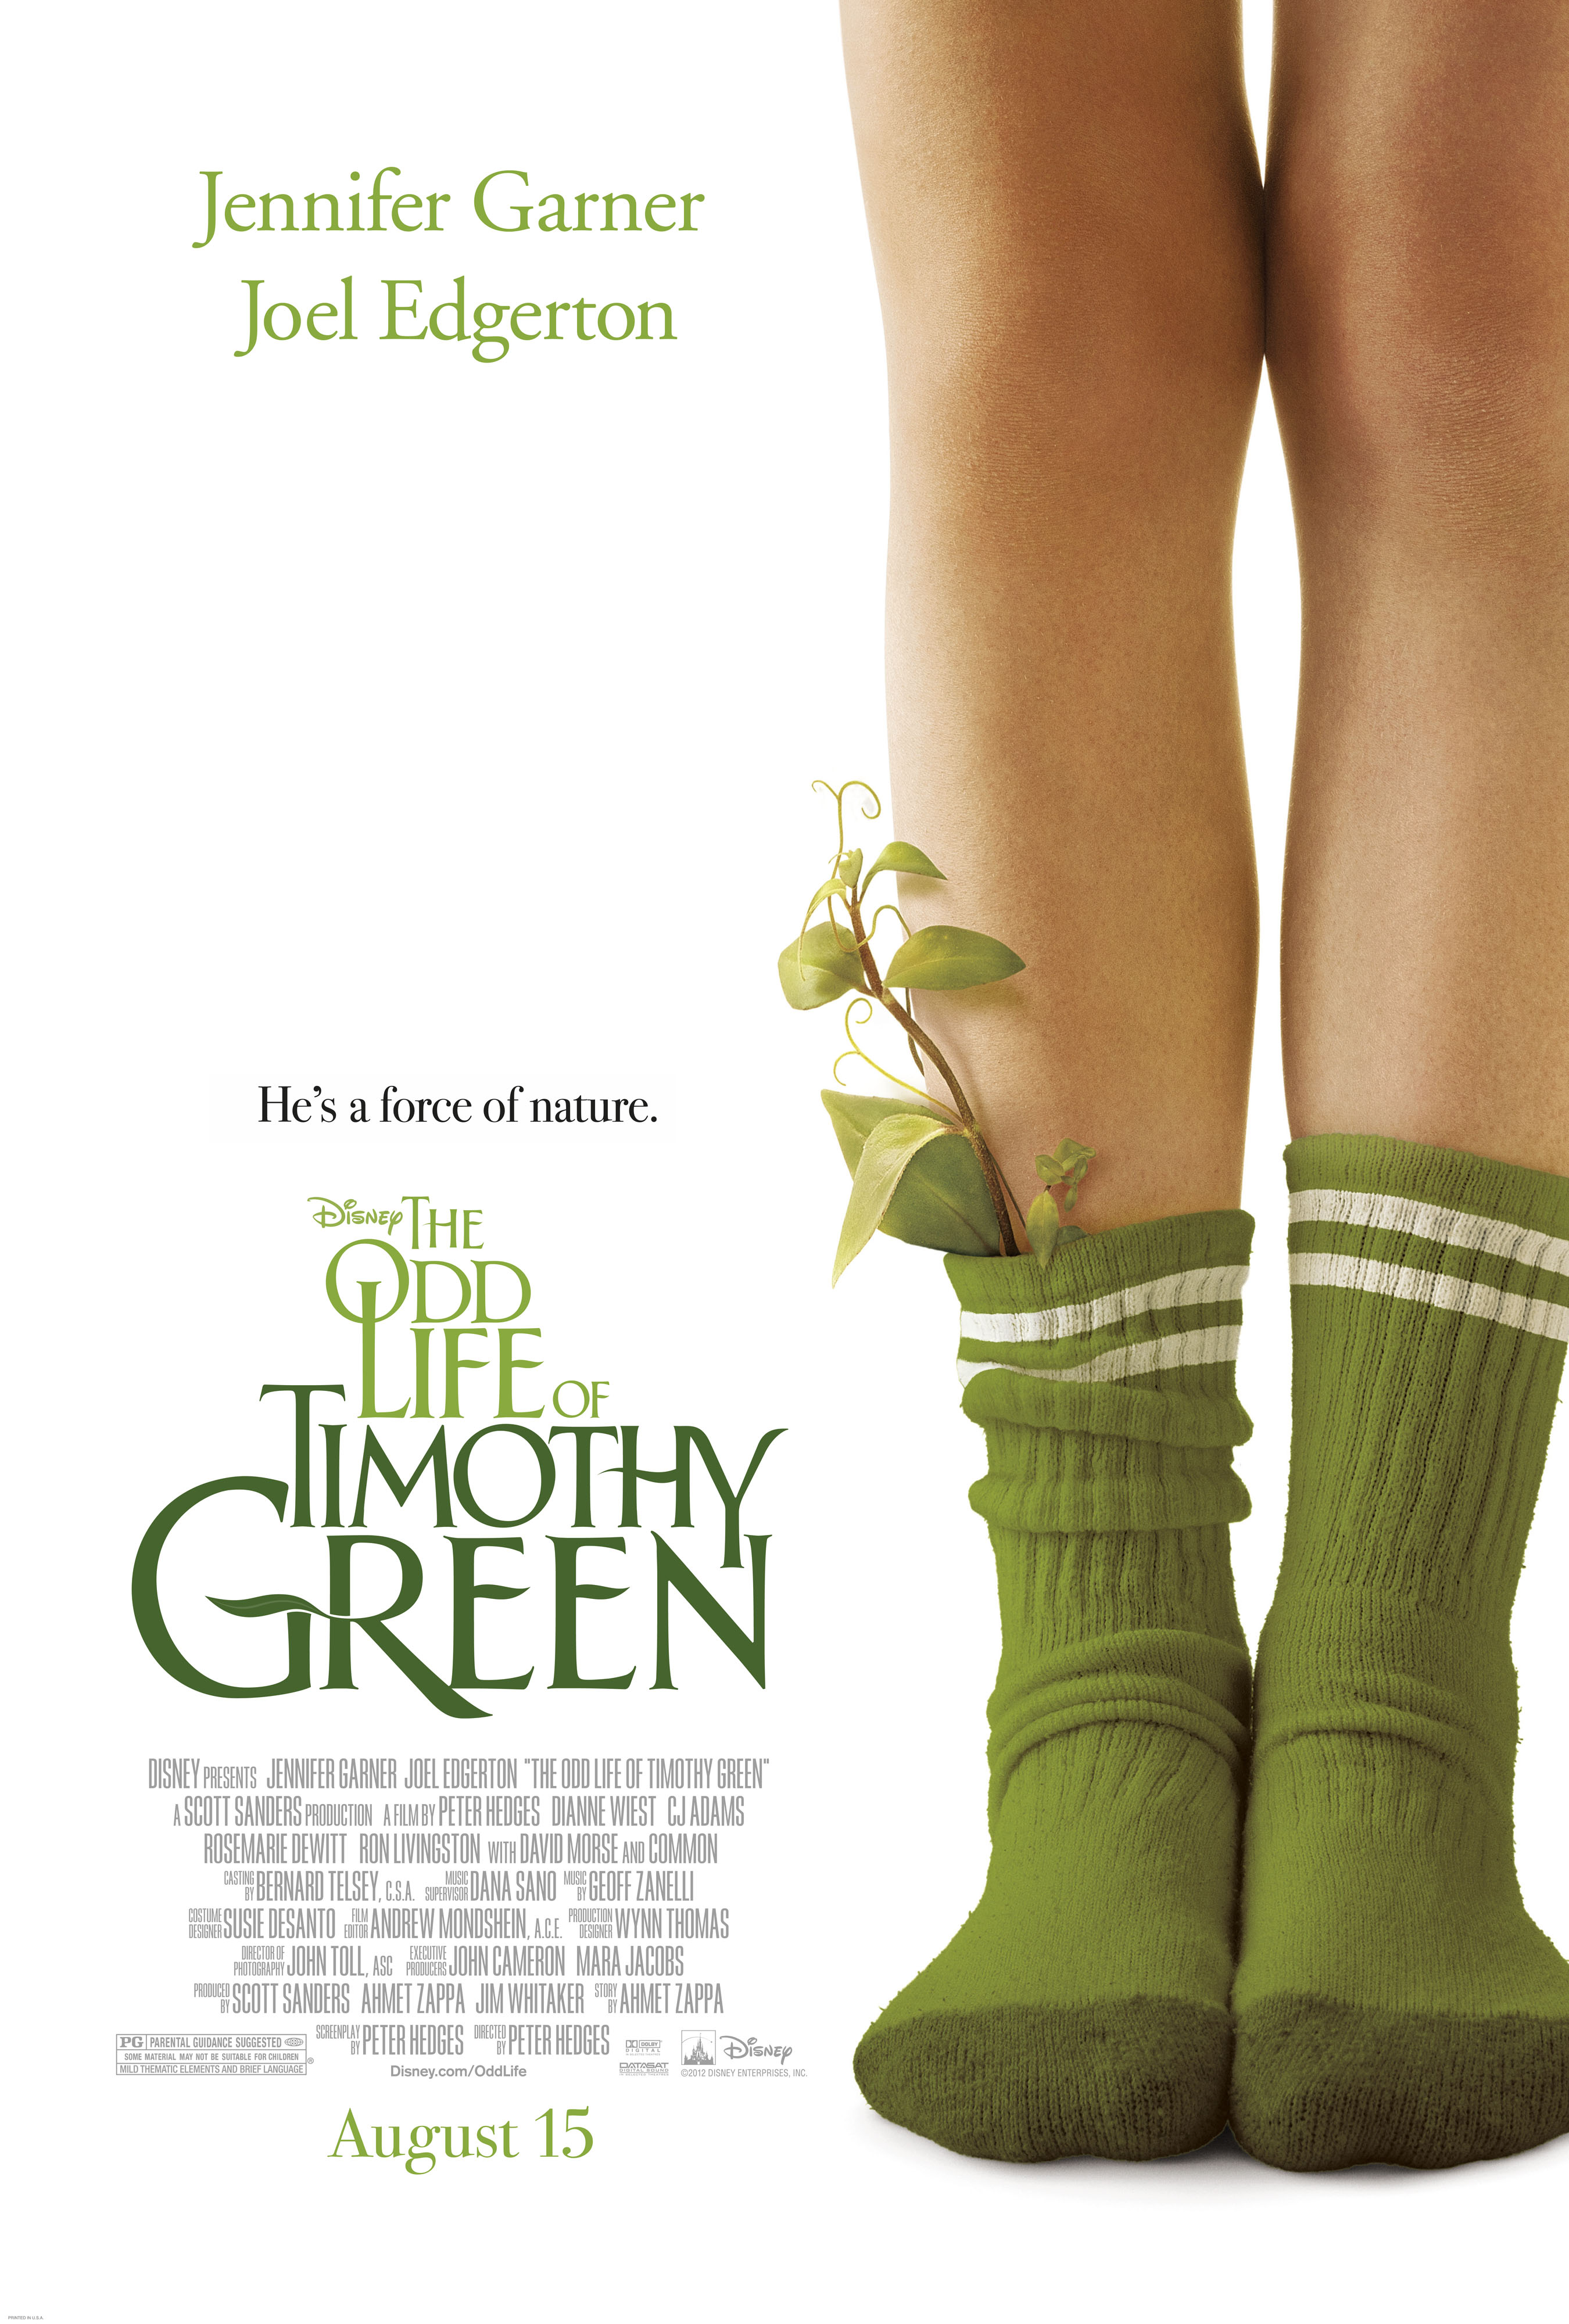 THE ODD LIFE OF TIMOTHY GREEN opens in theaters everywhere on Wednesday, August 15th!